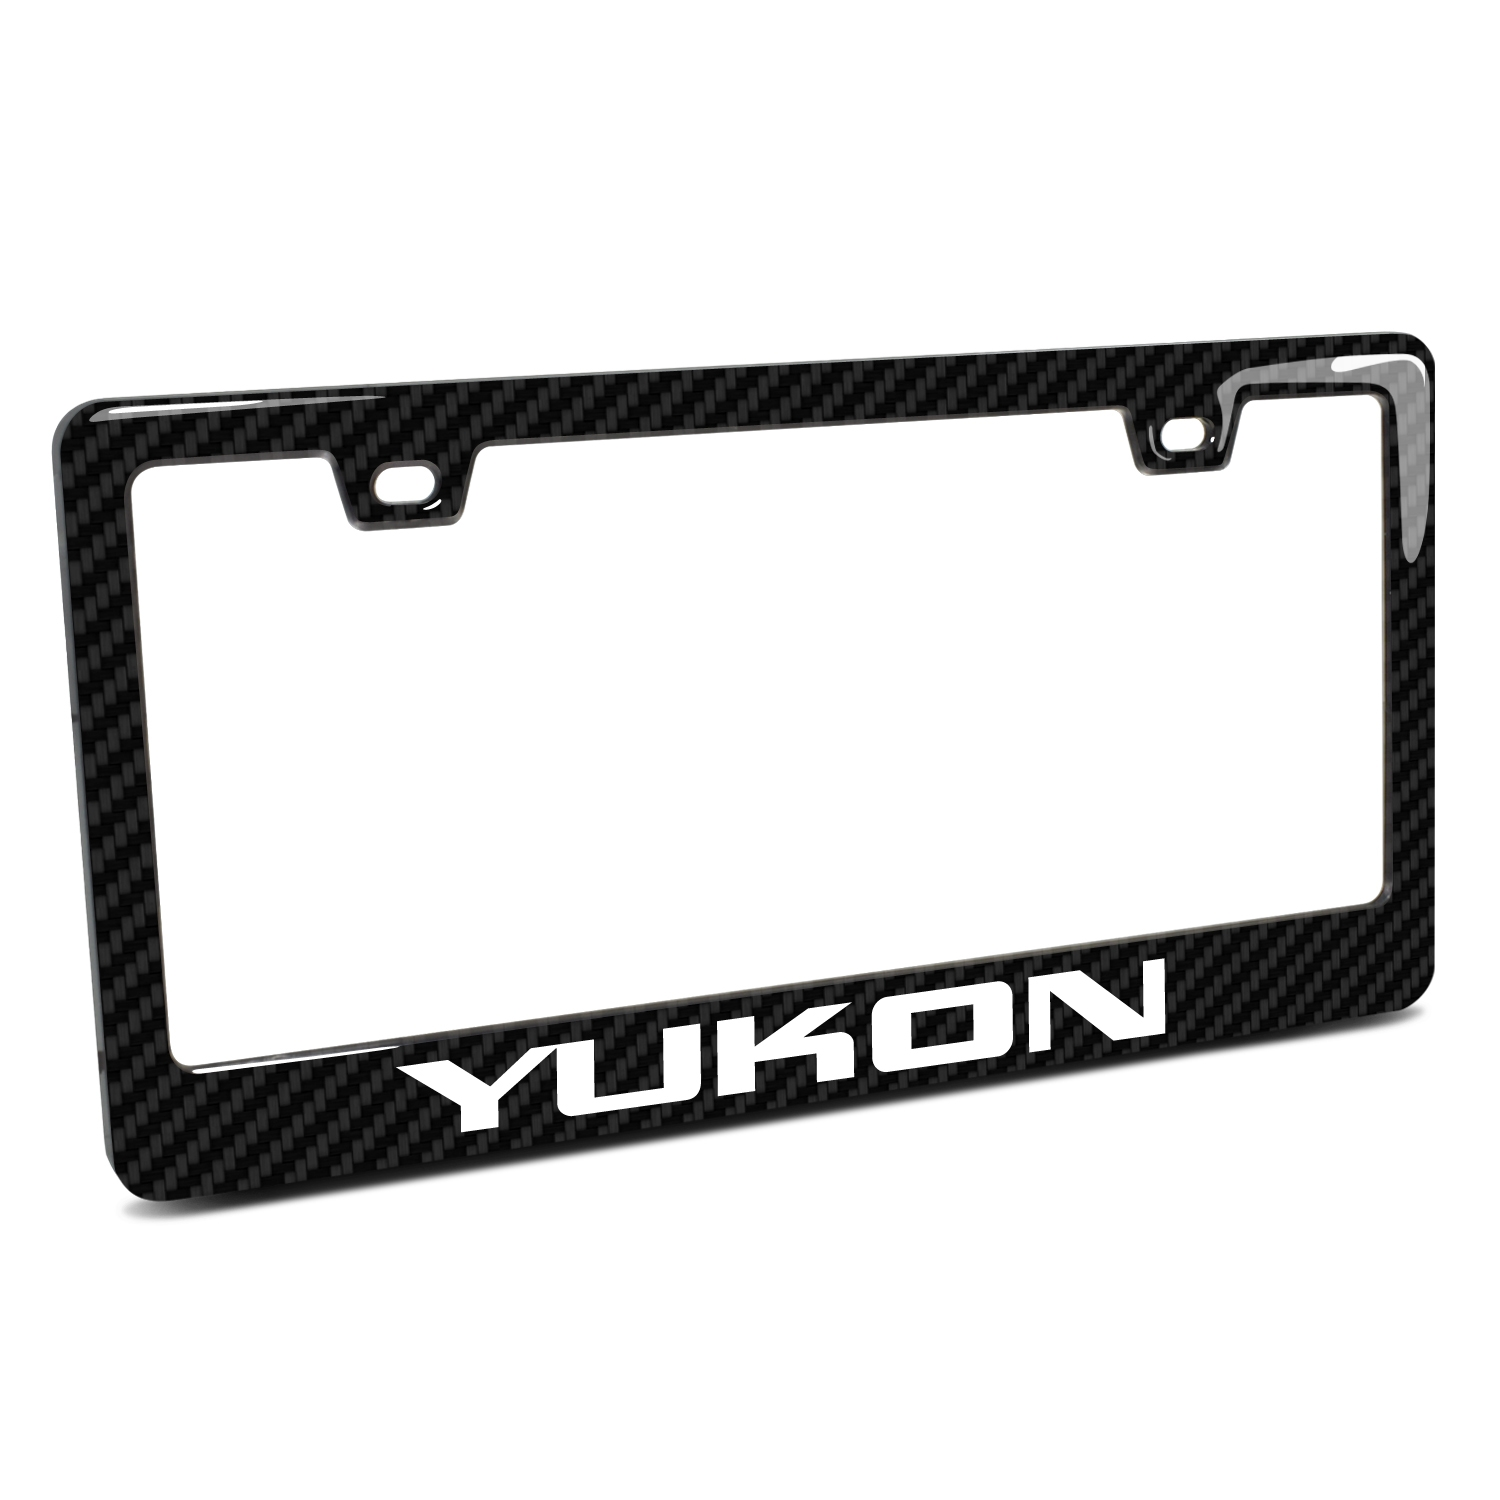 GMC Yukon in 3D on Real 3K Carbon Fiber Finish ABS Plastic License Plate Frame